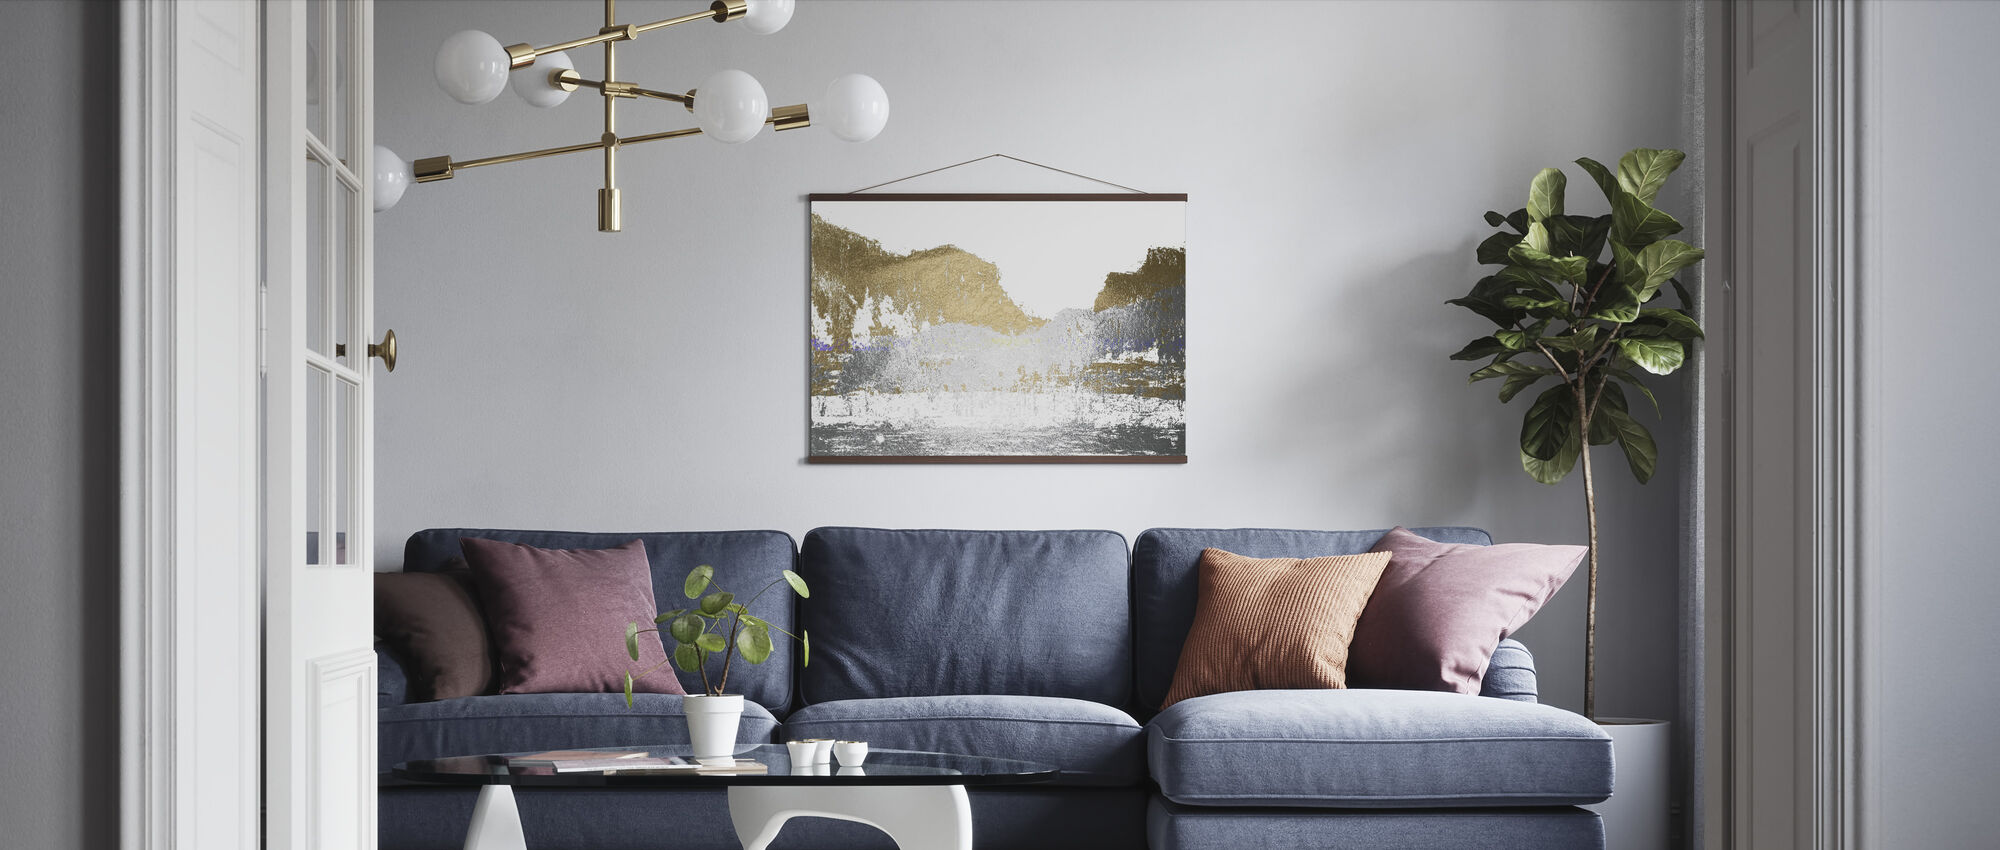 Multi Foil Mountain - Poster - Living Room